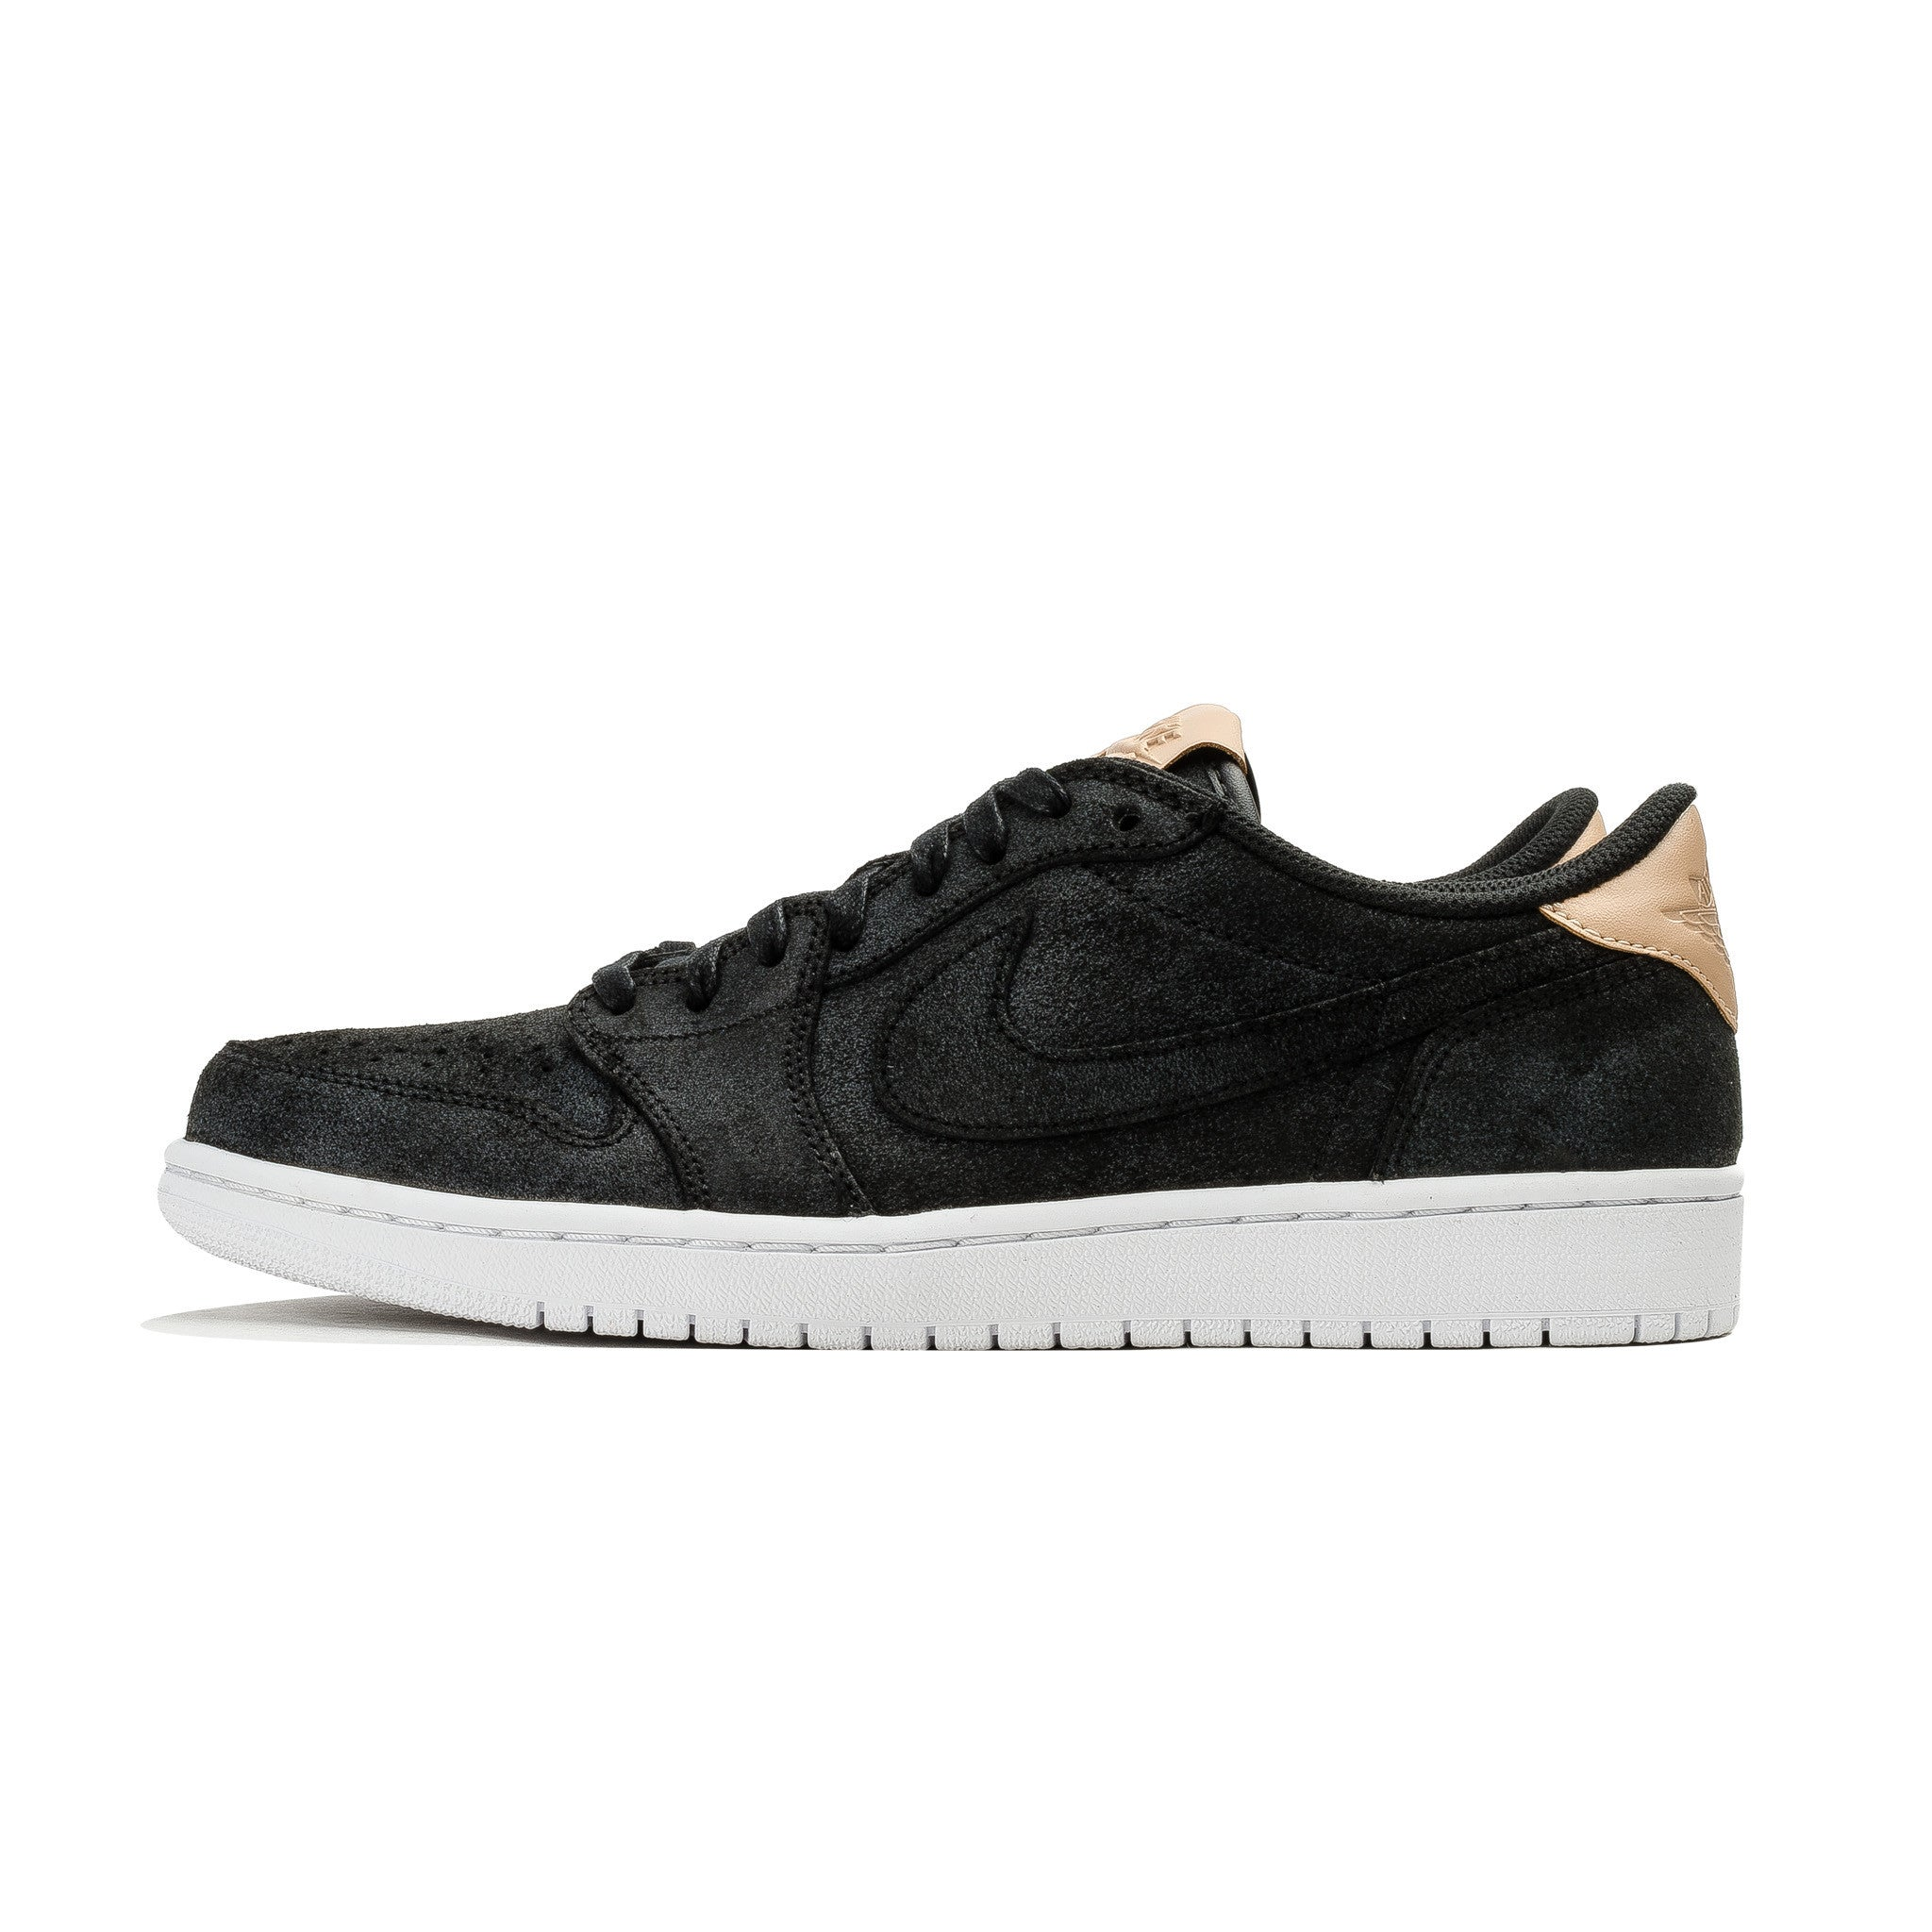 Air Jordan 1 Retro  Low OG PRM 905136-010 Black